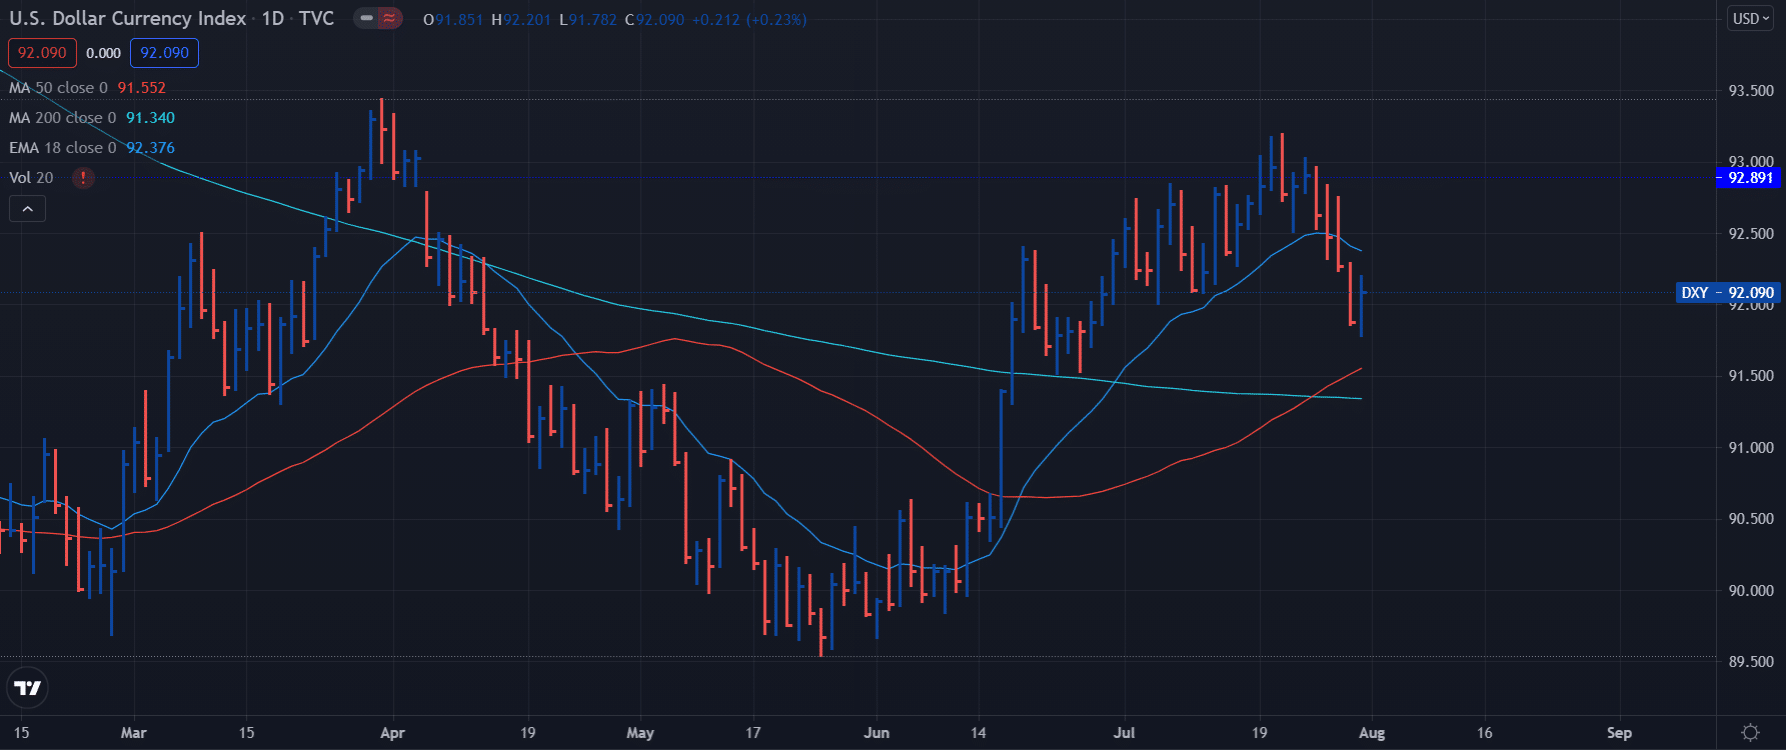 DXY weekly analysis through daily chart